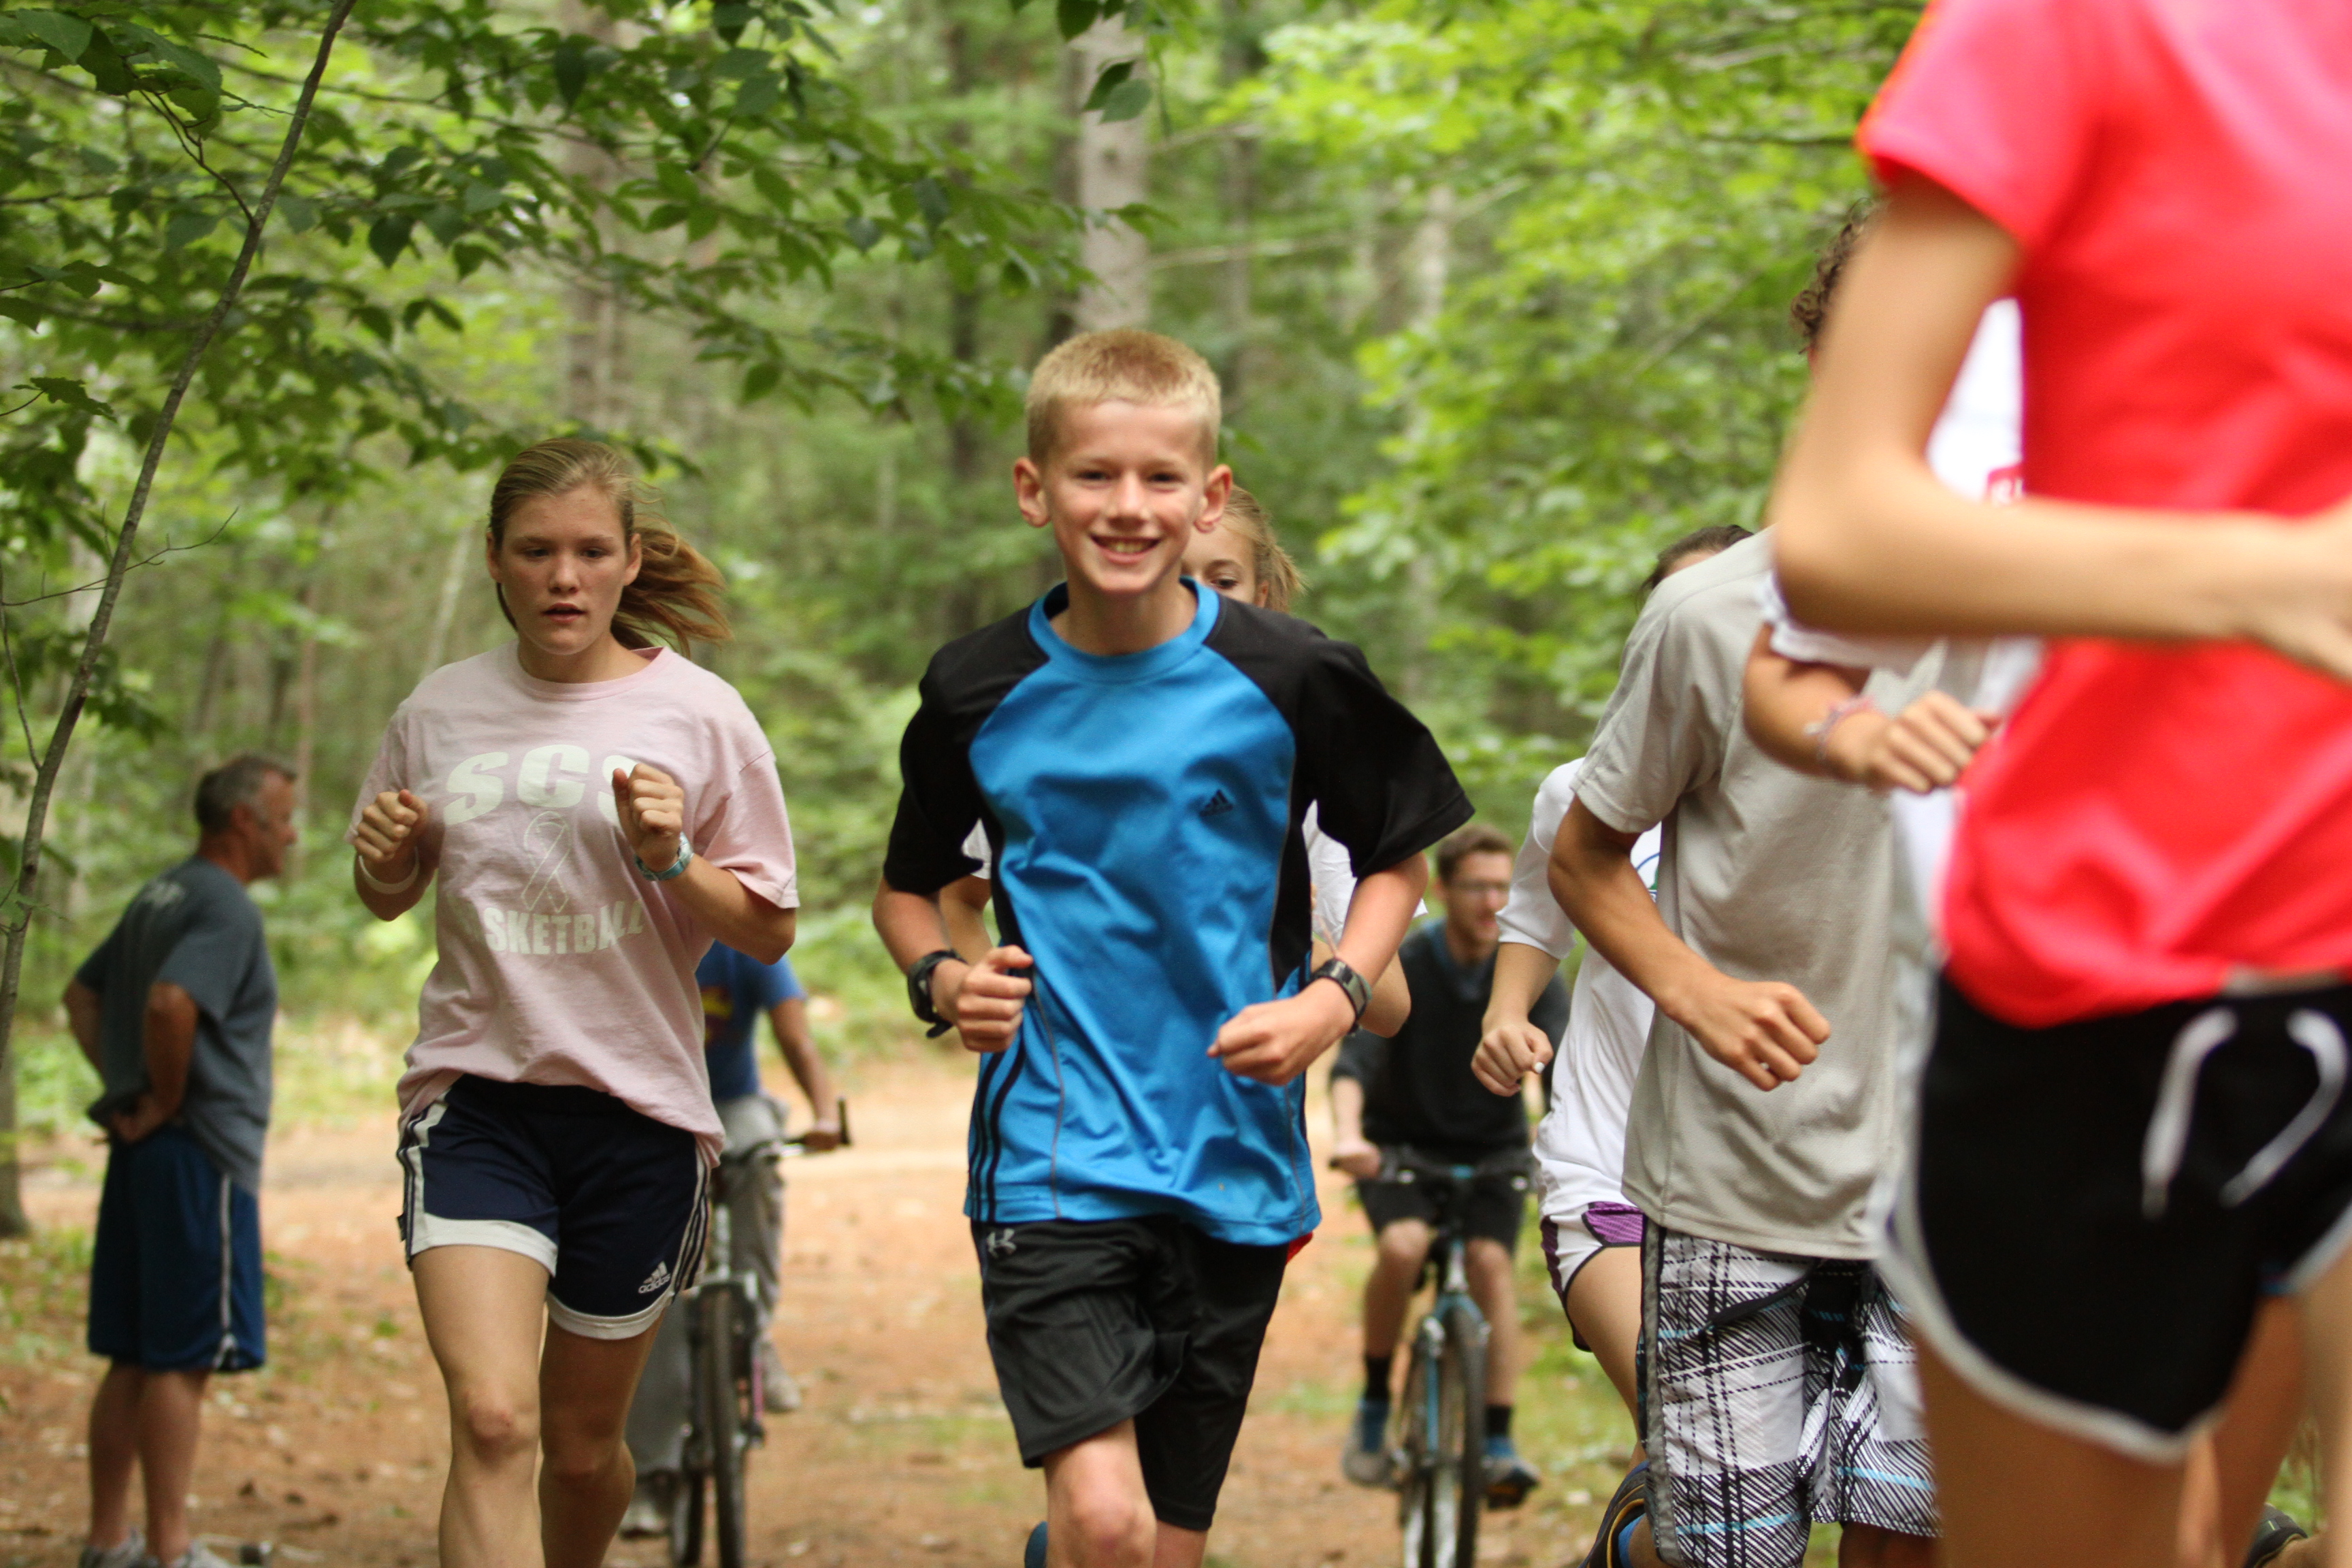 Campers running through a trail in the woods by a coach